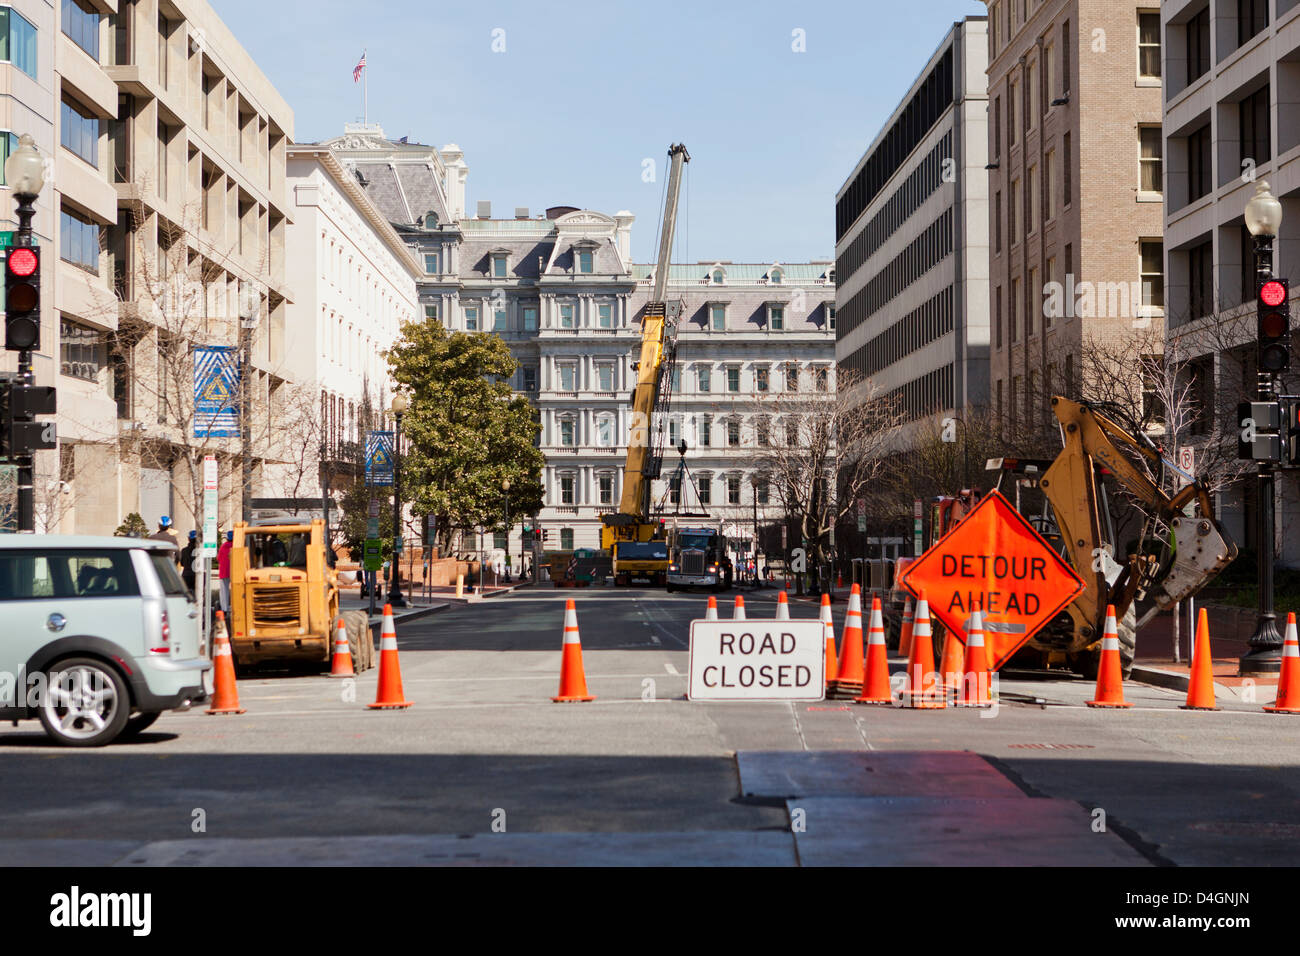 Urban road closure for construction work Stock Photo